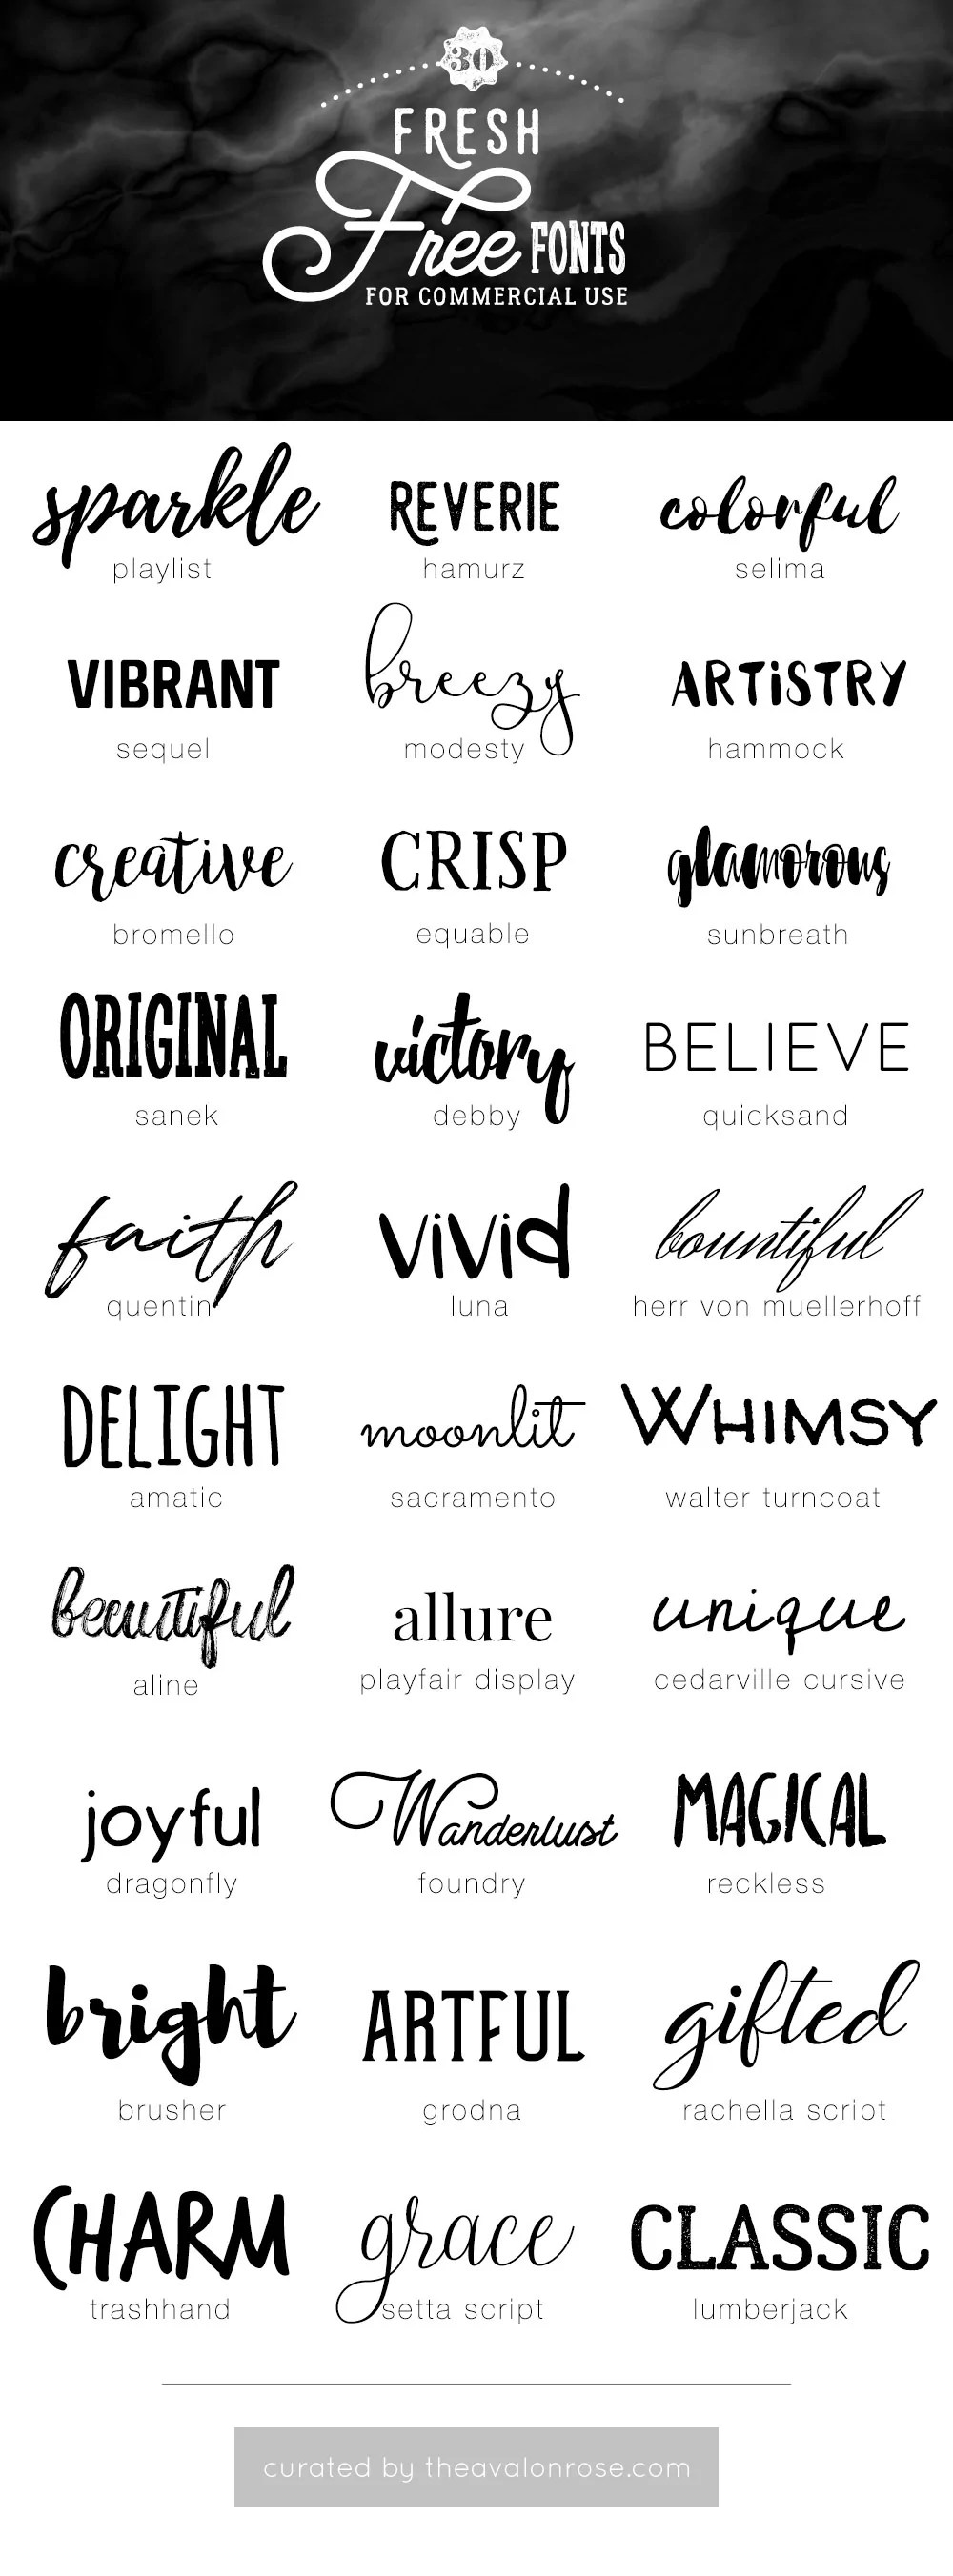 Download Fresh Free Fonts for Commercial Use - Avalon Rose Design